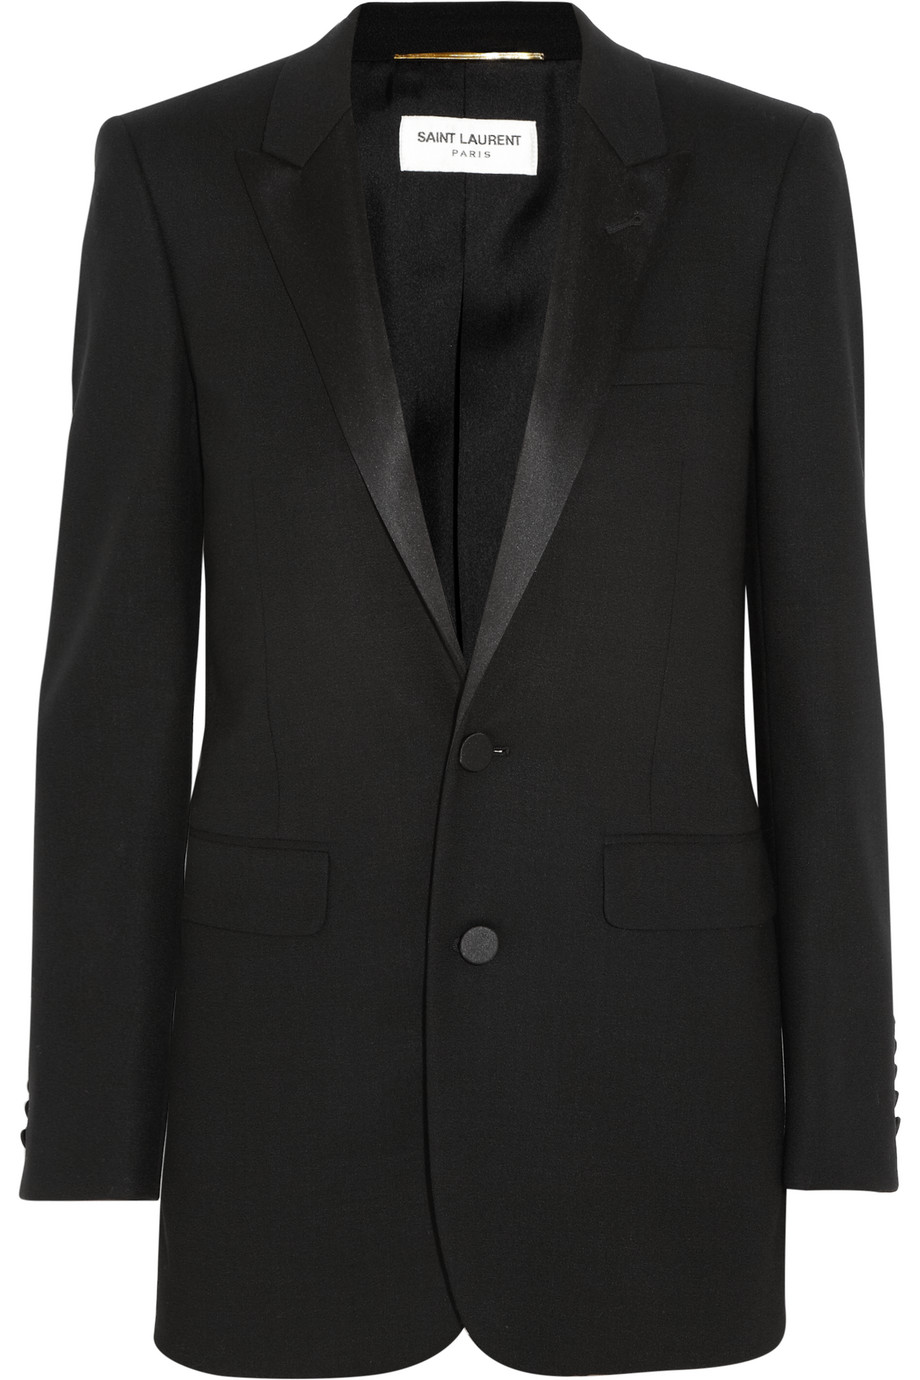 Saint Laurent Satin-Trimmed Wool-Crepe Tuxedo Blazer, Black, Women's, Size: 40